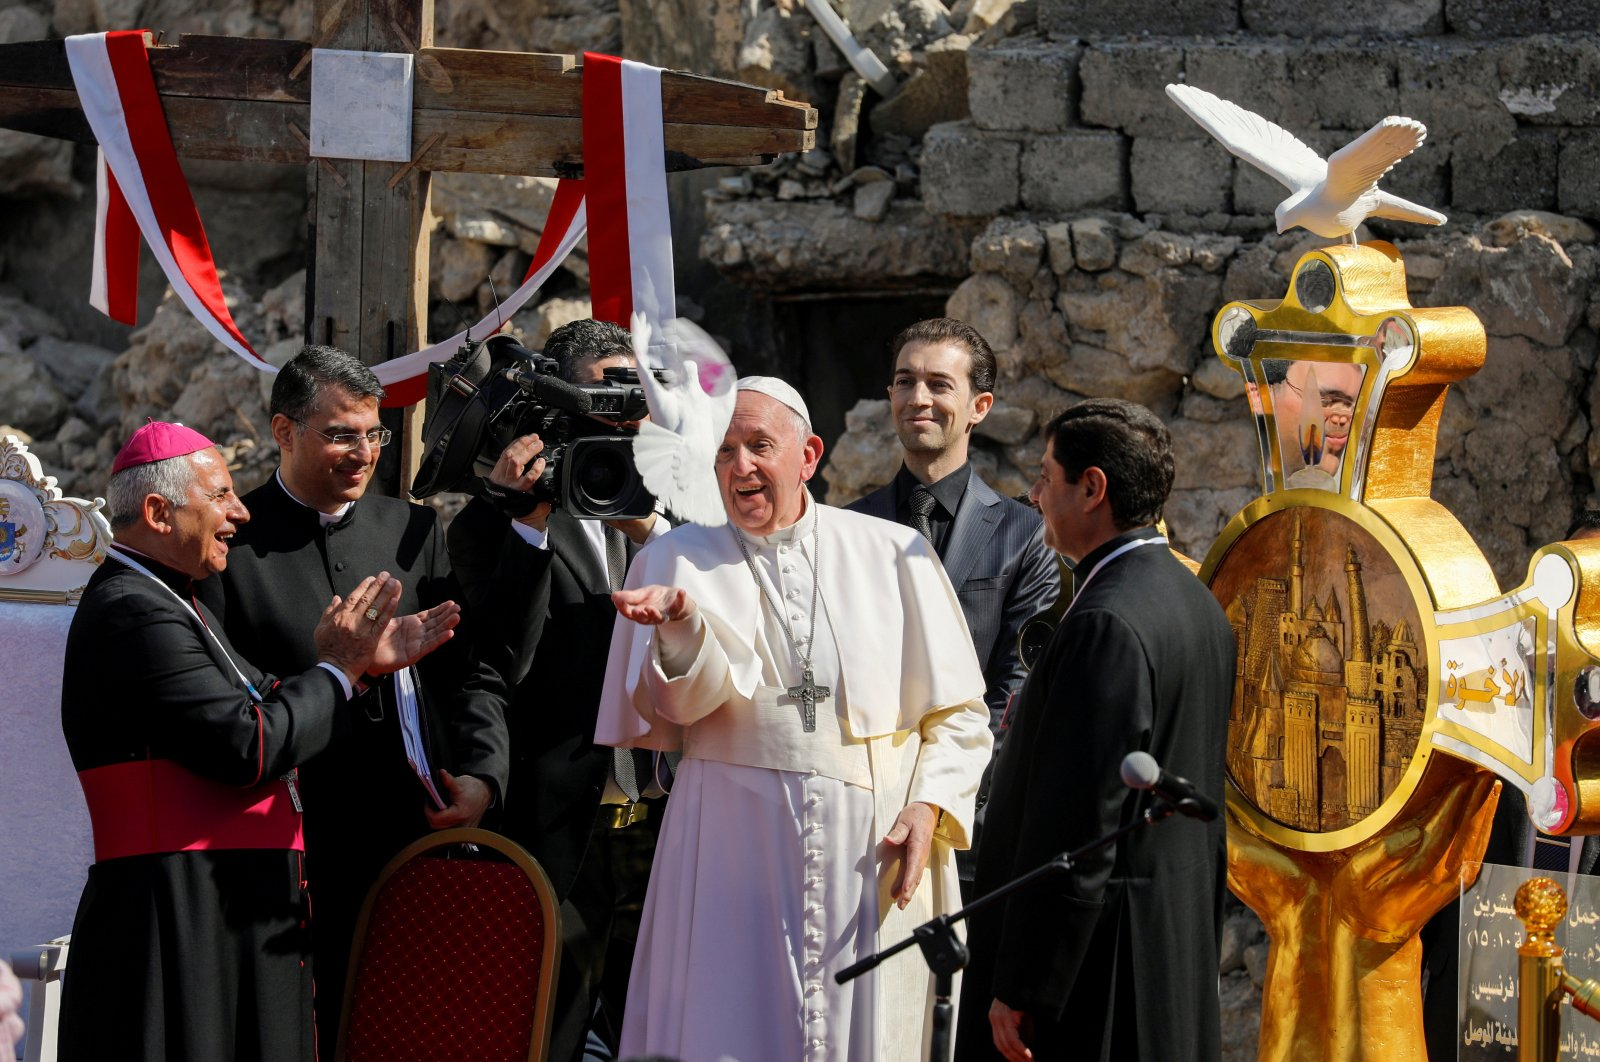 """Pope Francis releases a white dove during a prayer for war victims at """"Hosh al-Bieaa,"""" Church Square, in Mosul's Old City, Iraq, March 7, 2021. (Reuters Photo)"""